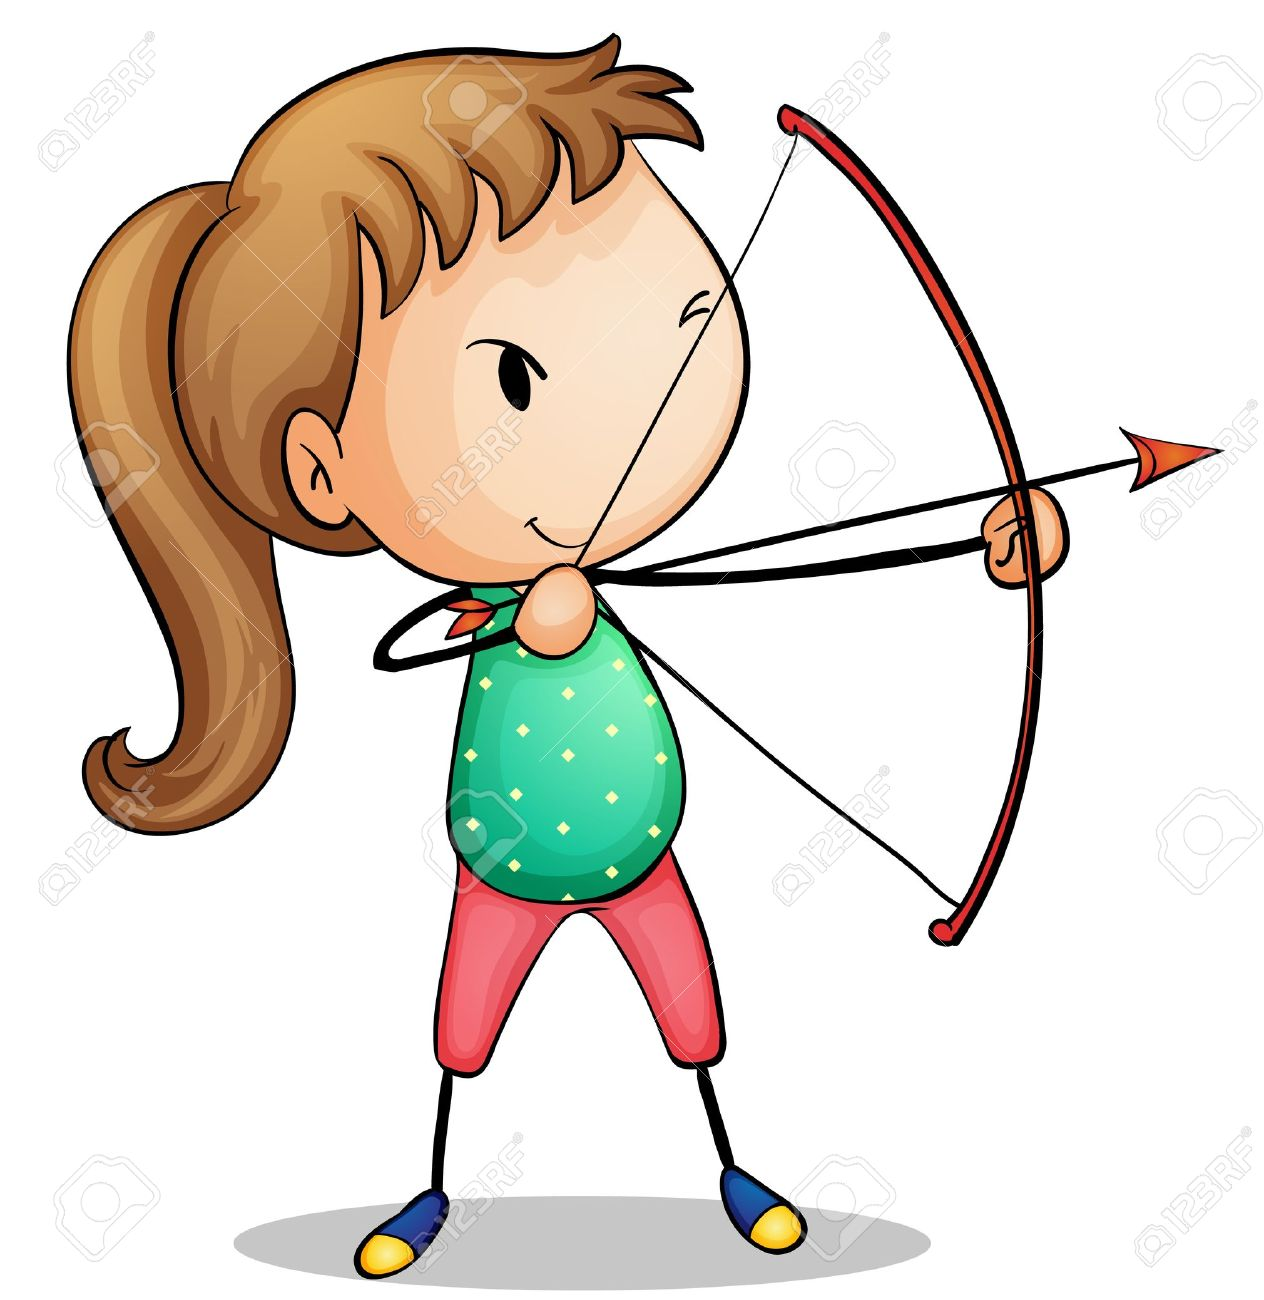 archery clipart cartoon